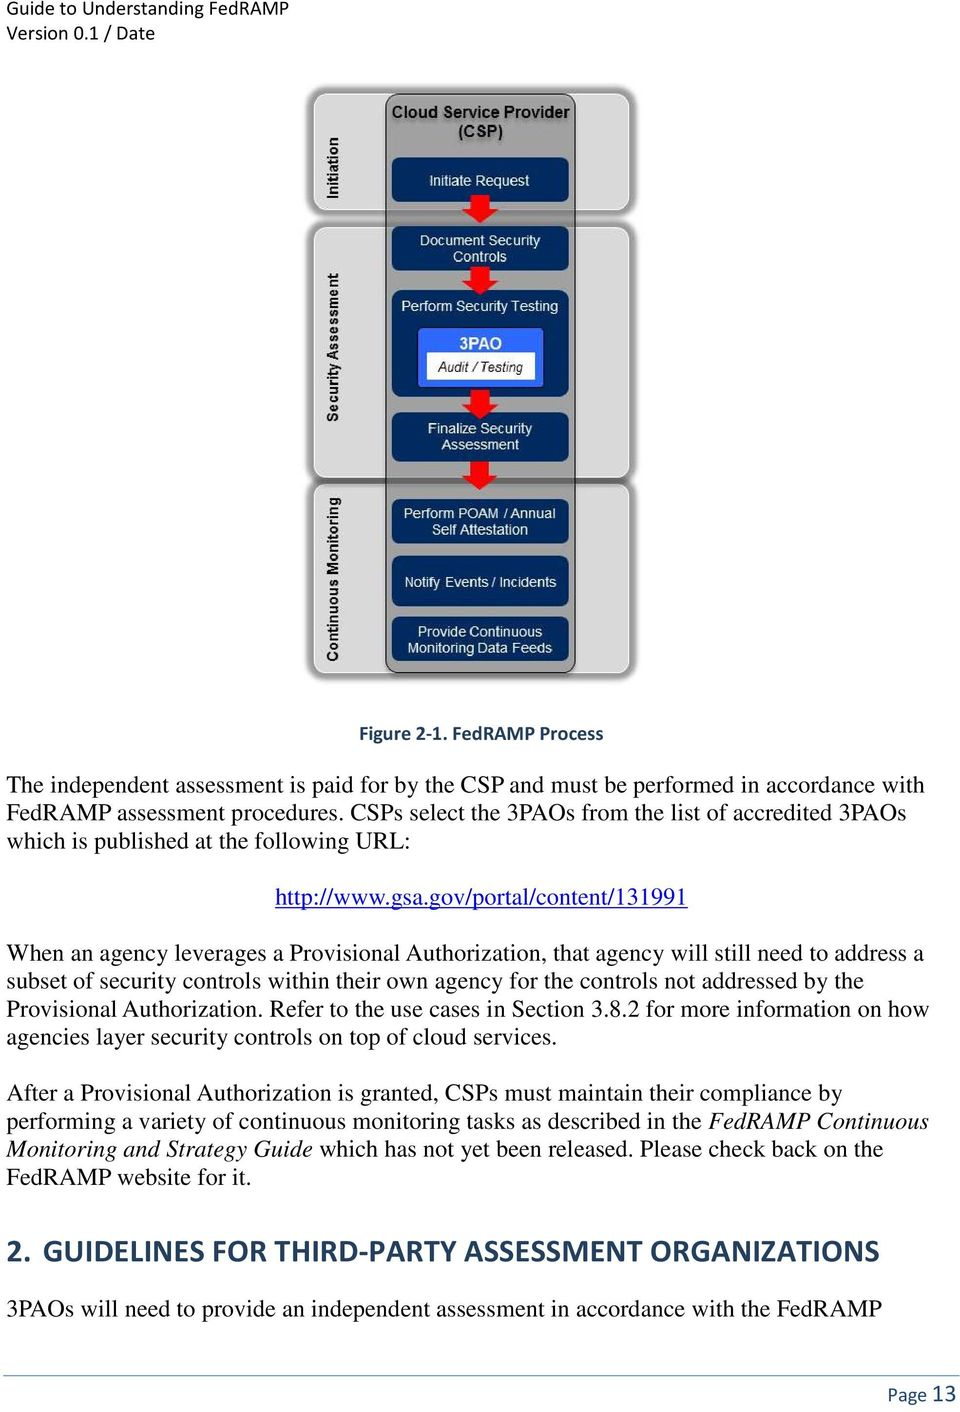 gov/portal/content/131991 When an agency leverages a Provisional Authorization, that agency will still need to address a subset of security controls within their own agency for the controls not